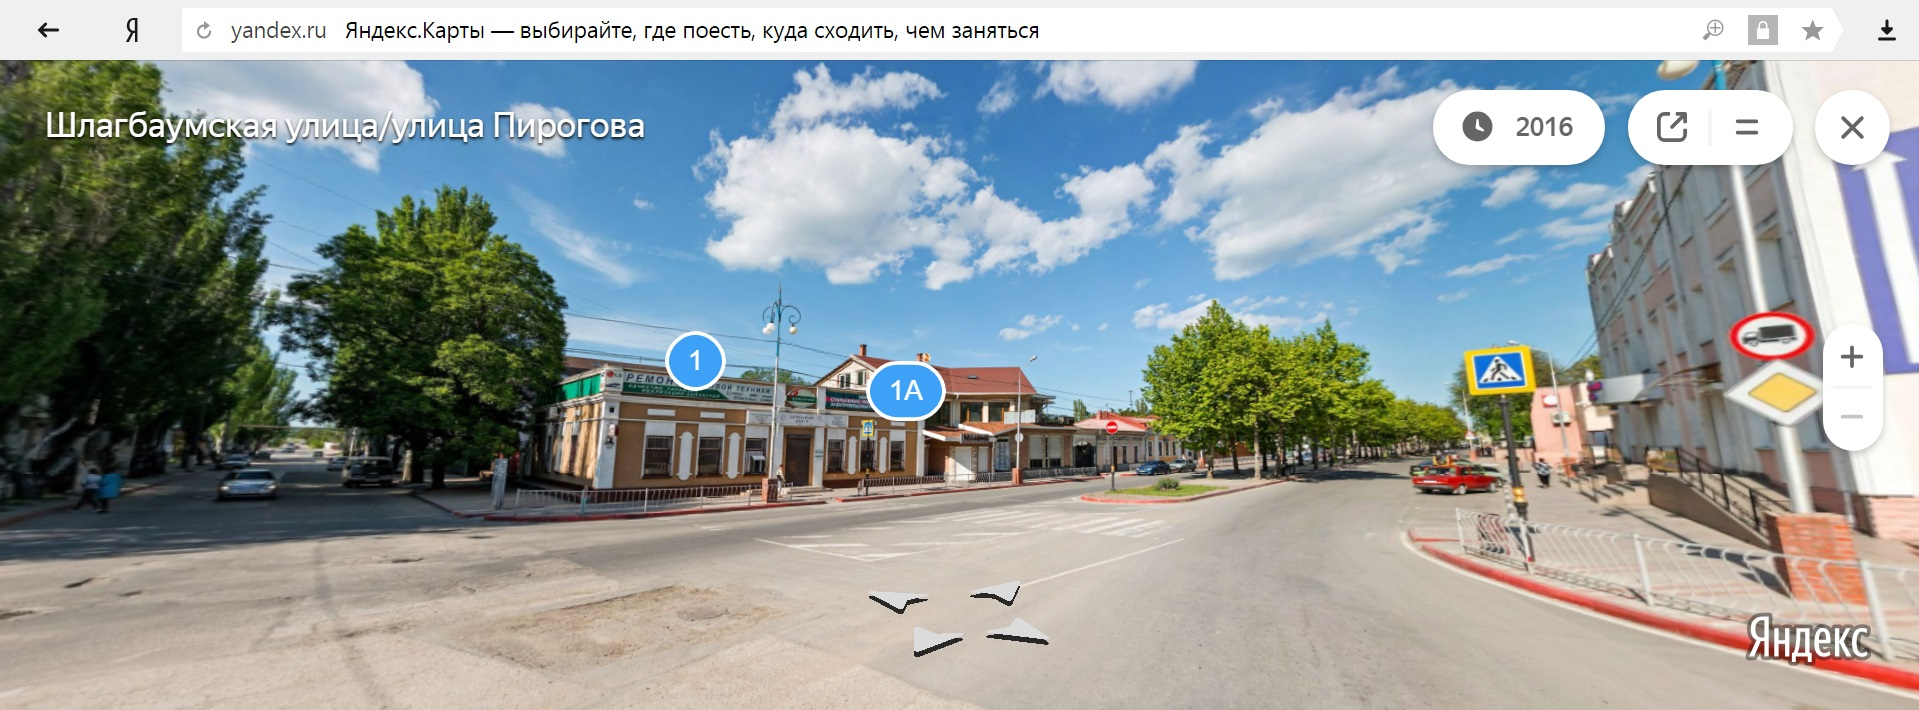 kerch website pirogova street